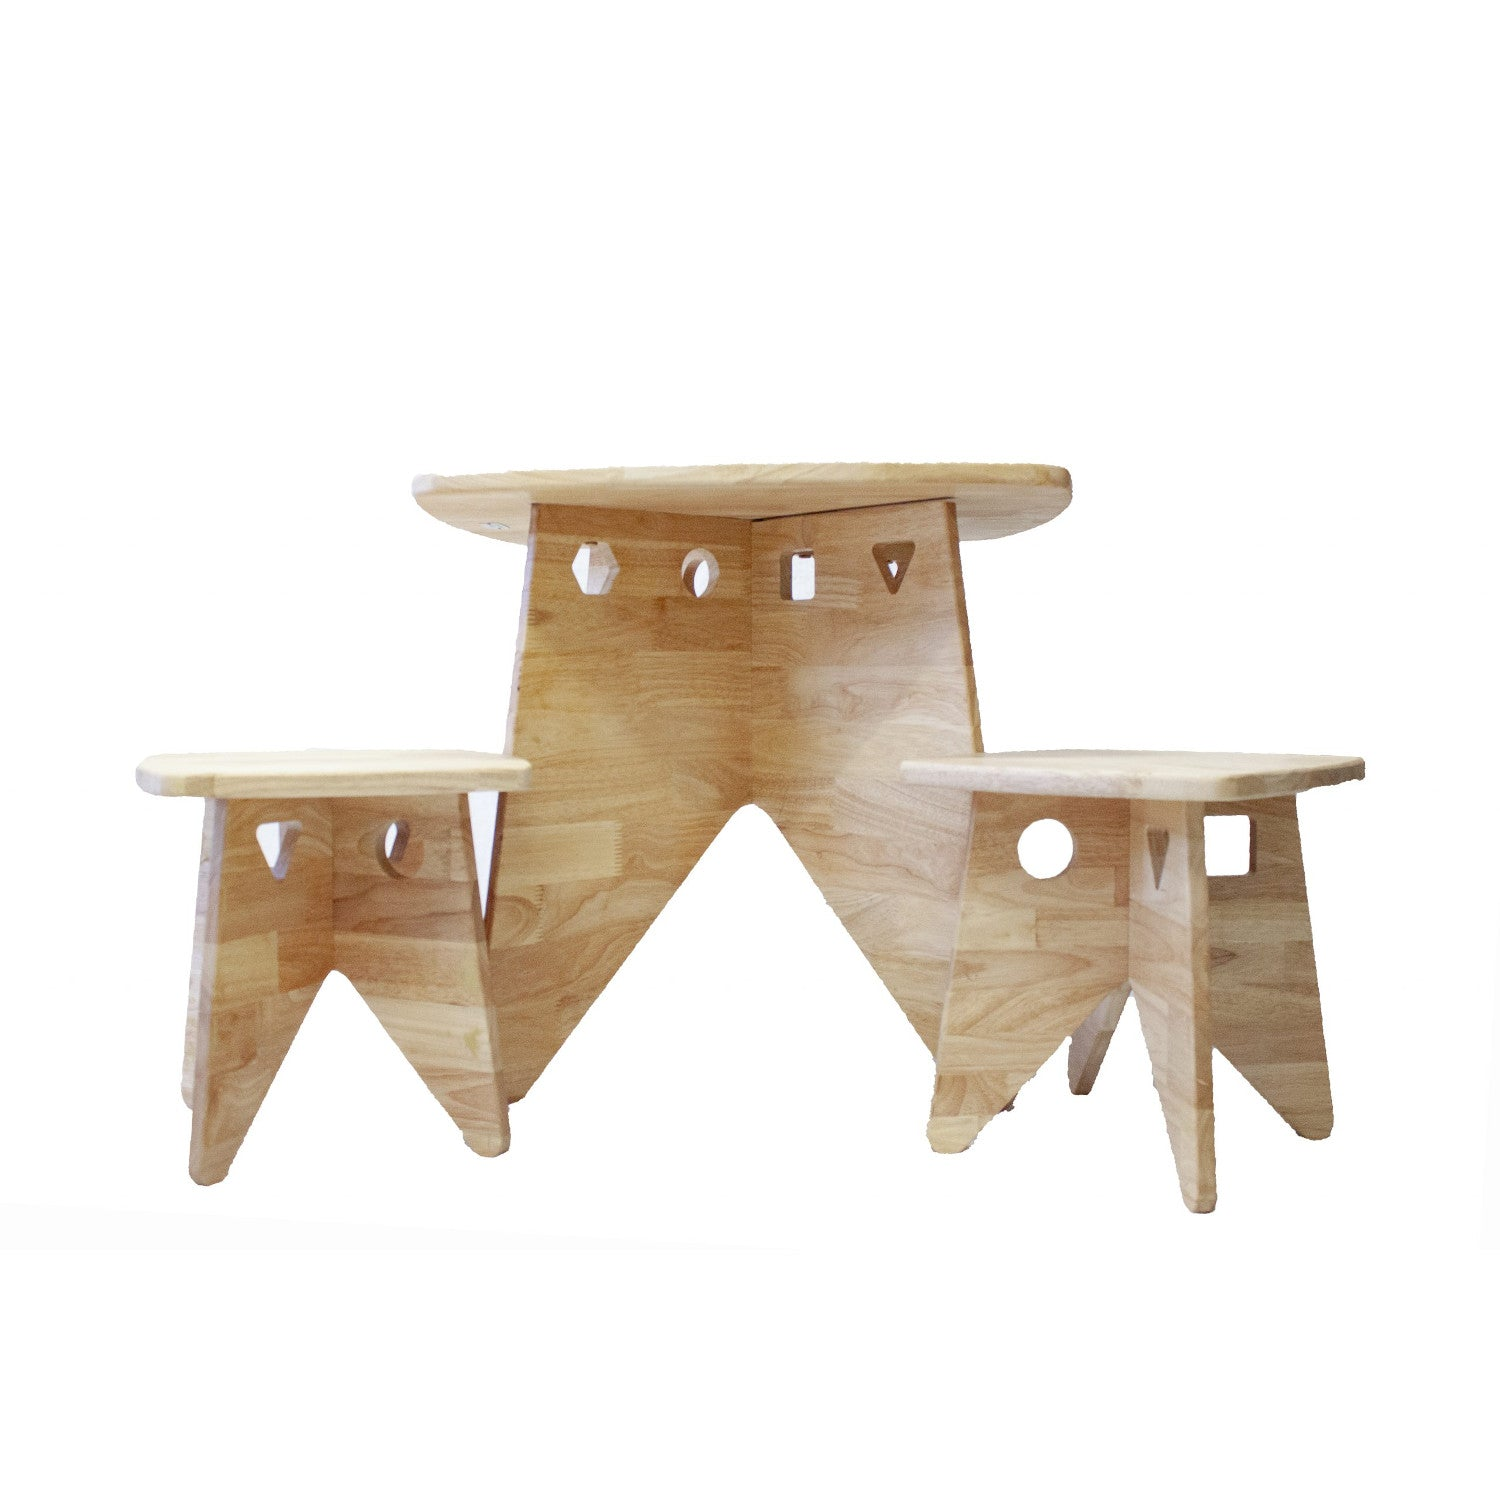 Q Toys Retro Kids Table and Two Stools Set